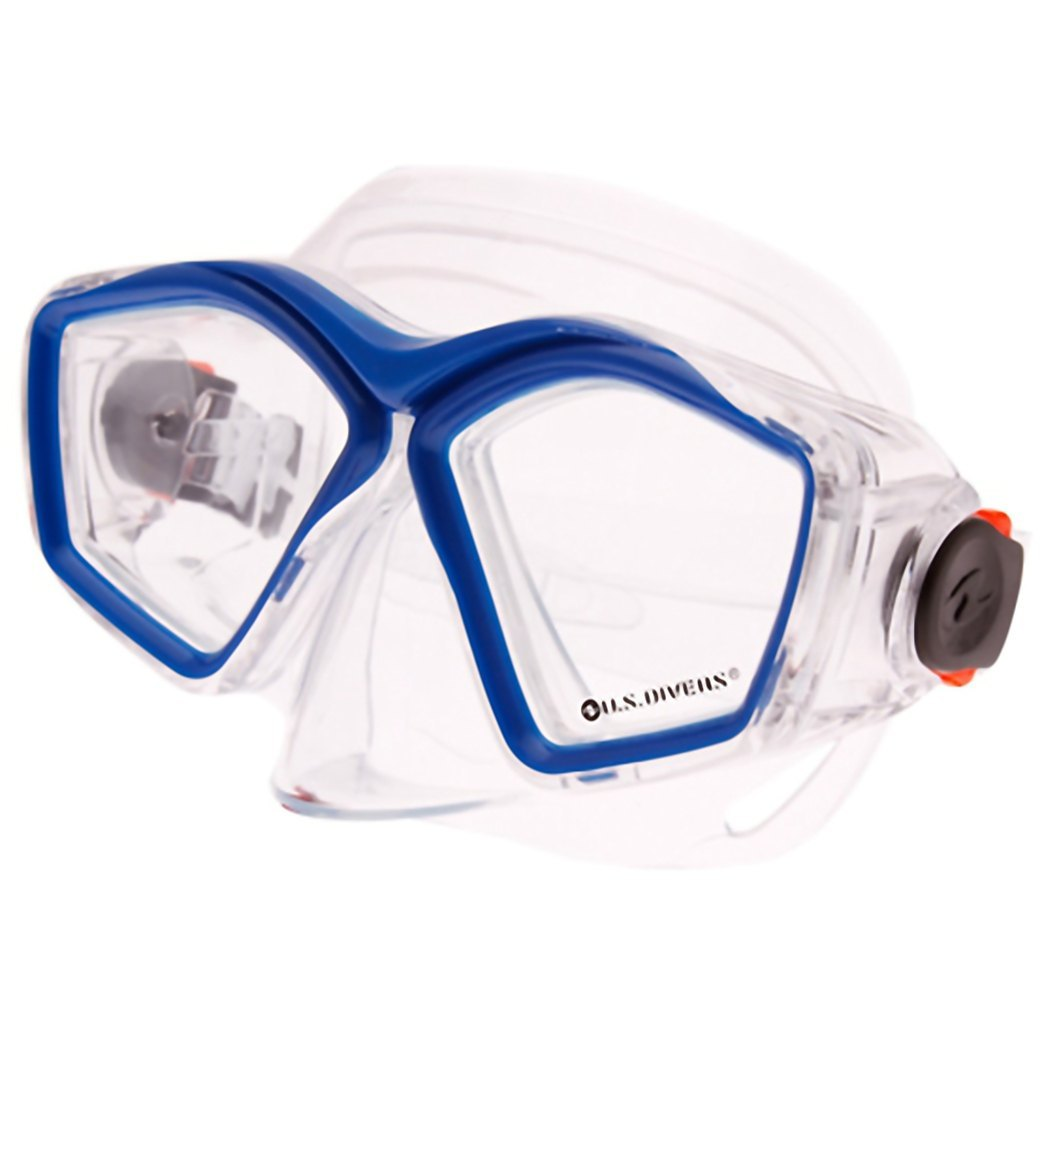 snorkeling with glasses n8hf  US Divers Icon/SeaBreeze/ Proflex/Cbag Snorkel, Mask and Fin Set at  SwimOutletcom